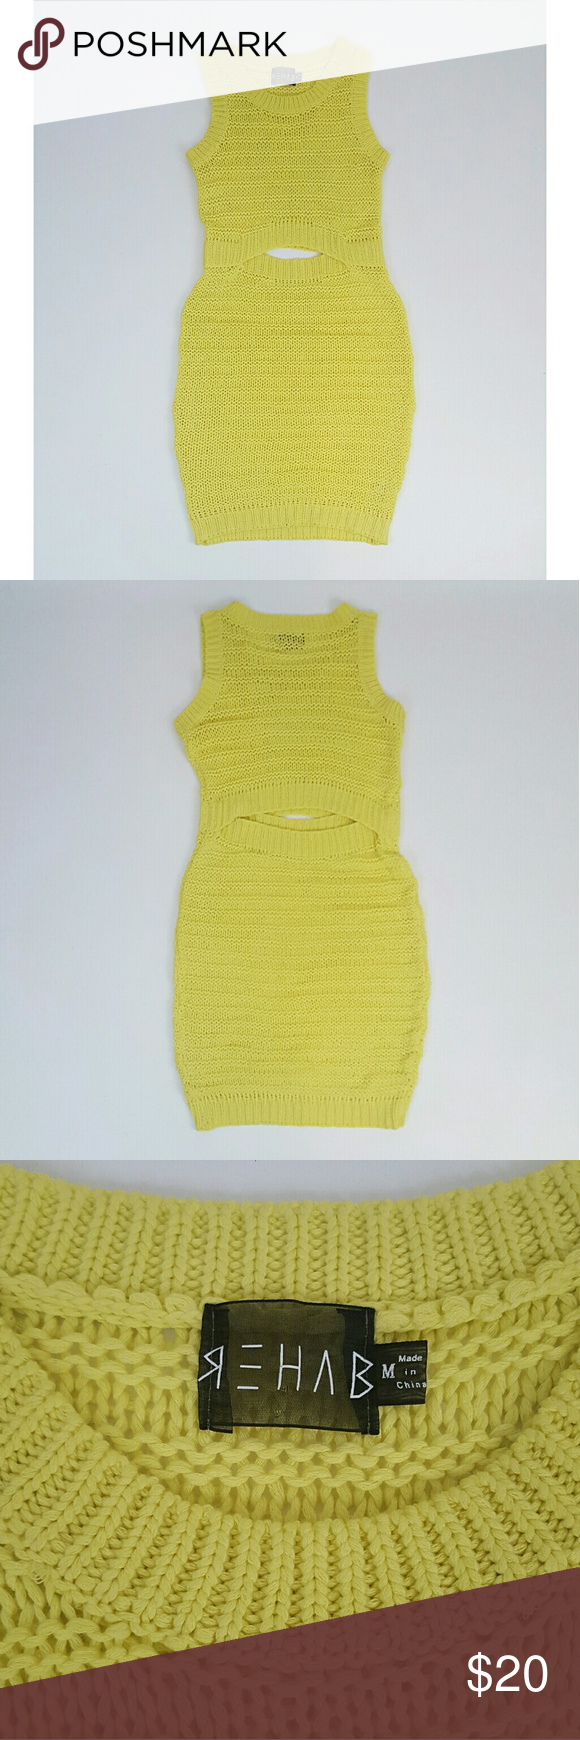 "Lime neon green knit sweater dress Midriff cutout REHAB lime green knit dress with Midriff cutout in front + back.  Excellent condition, no flaws.  Fits true to size Medium, too big on me (size 4, 5'4"" tall).  It hits at knee length on me, will also work for a taller girl.  Stretchy loose knit sweater fabric.  Bust 32-44"" around  Waist 26-32"" around  Hip 36-46"" around  Length 40"" Rehab Dresses Mini"